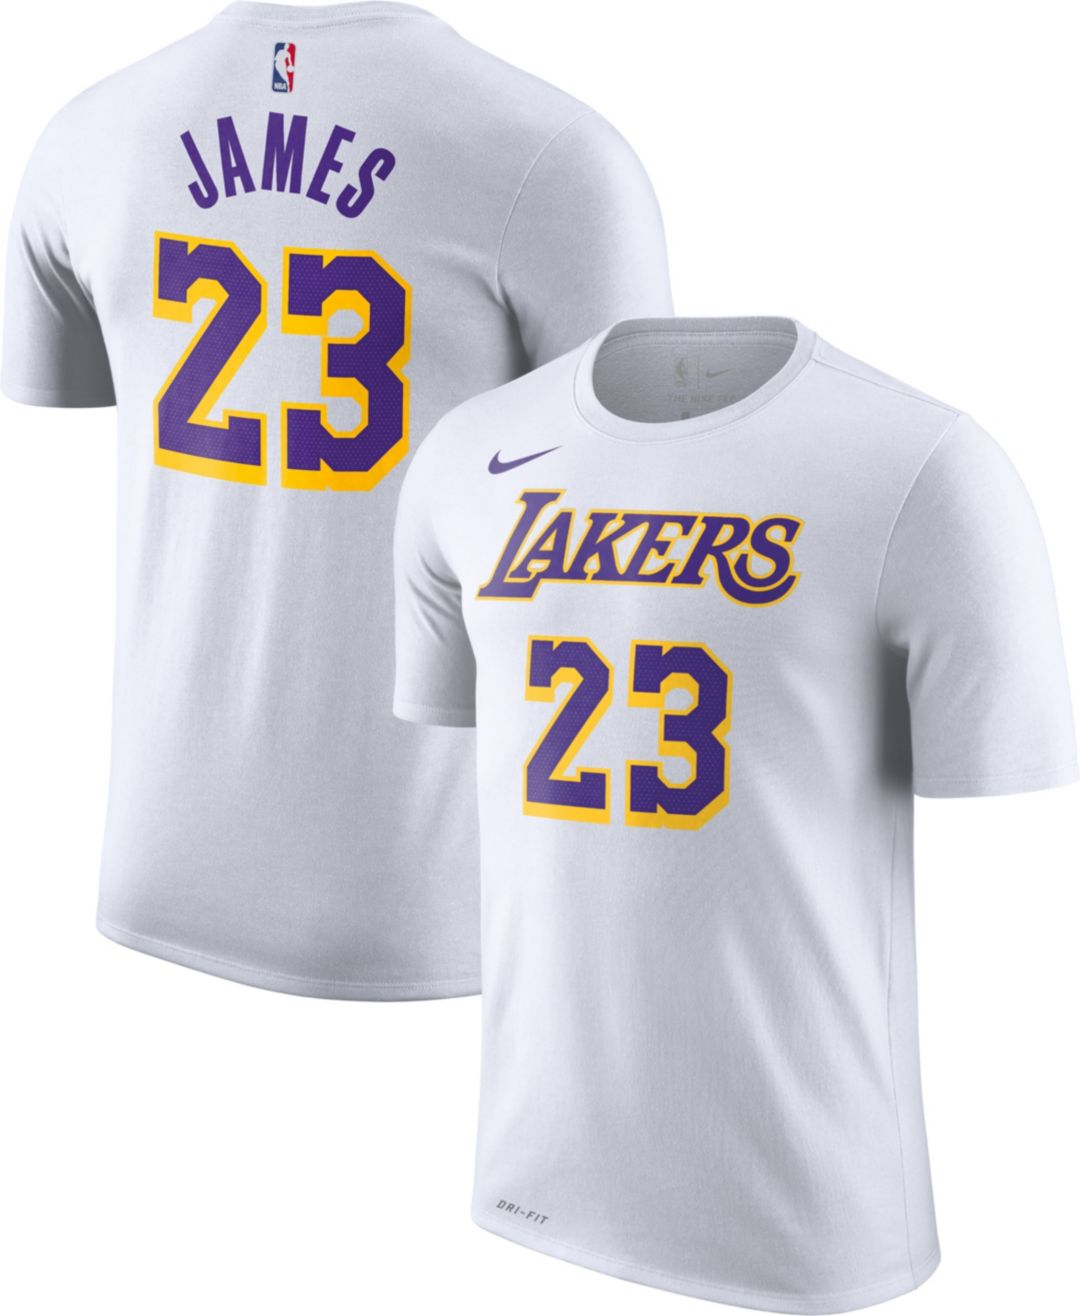 dad24affbbf6 Nike Men's Los Angeles Lakers LeBron James Dri-FIT White T-Shirt.  noImageFound. Previous